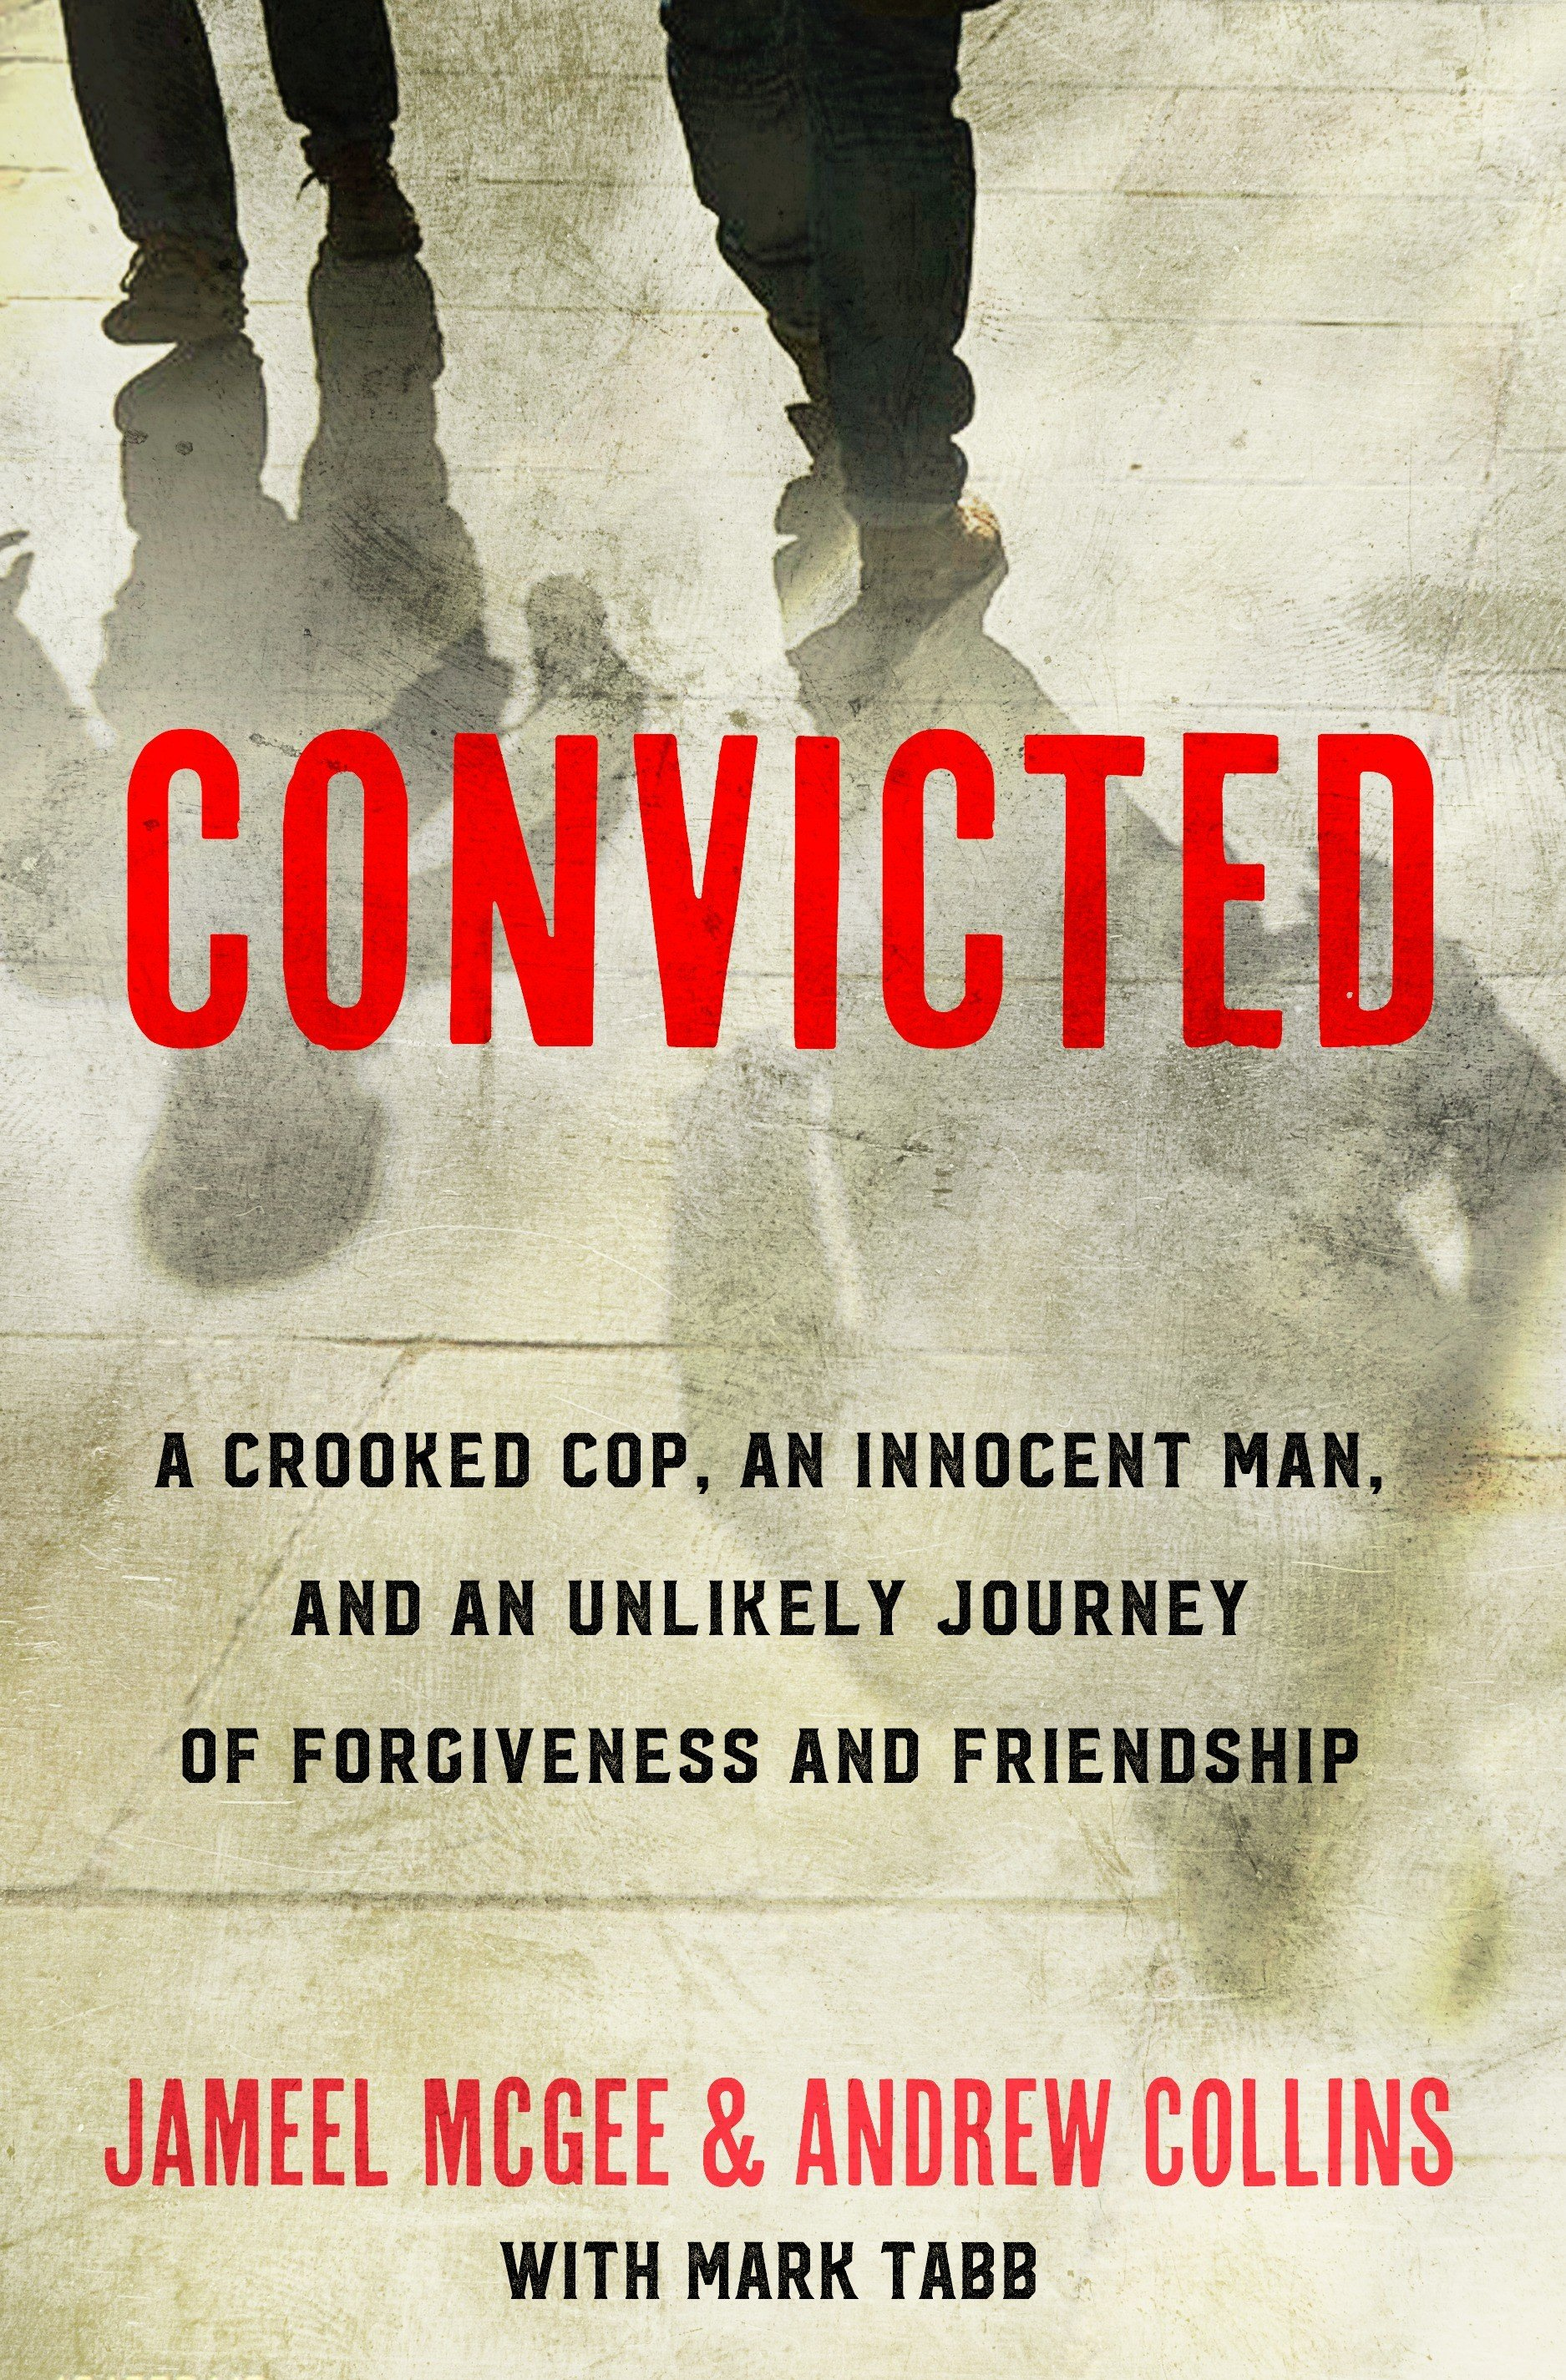 Read Their Book! - A powerful message of hope for anyone burdened by regret and everyone who longs for a fresh start.Racial tensions had long simmered in Benton Harbor, a small city on the eastern shore of Lake Michigan, before the day a white narcotics officer--more focused on arrests than justice—set his sights on an innocent black man. But when officer Andrew Collins framed Jameel McGee for possession of crack cocaine, the surprising result was not a race riot but a transformative journey for both men.Falsely convicted, McGee spent three years in federal prison. Collins also went to prison a few years later for falsifying police reports. While behind bars, the faith of both men deepened. But the story took its most unexpected turn once they were released--when their lives collided again in a moment brimming with mistrust and anger. The two were on a collision course—not to violence—but forgiveness.As current as today's headlines, this explosive true story reveals how these radically conflicted men chose to let go of fear and a thirst for revenge to pursue reconciliation for themselves, their community, and our racially divided nation.